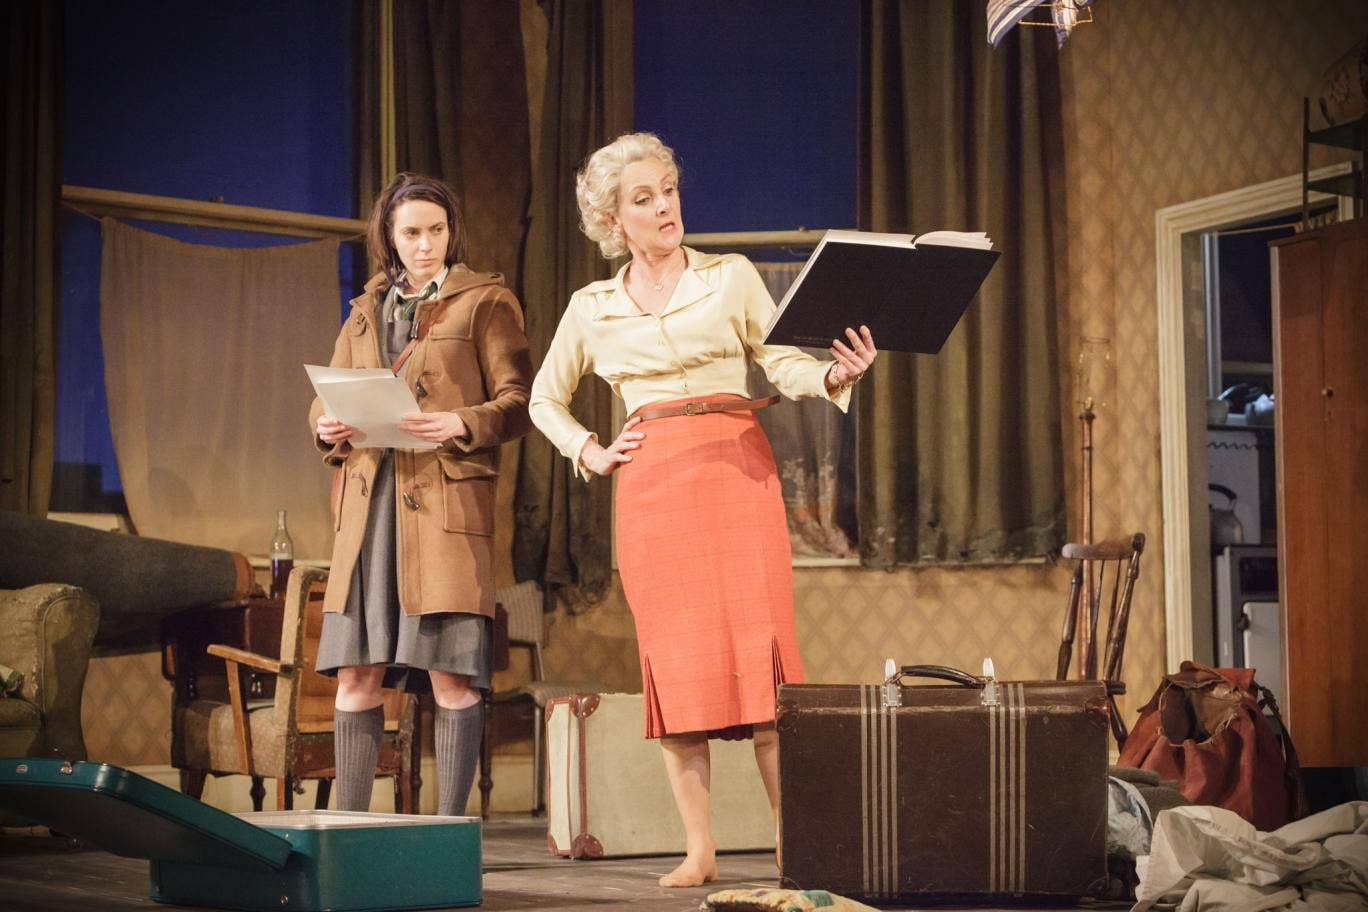 Kate O'Flynn (Jo) and Lesley Sharp (Helen) in 'A Taste of Honey' at the National Theatre